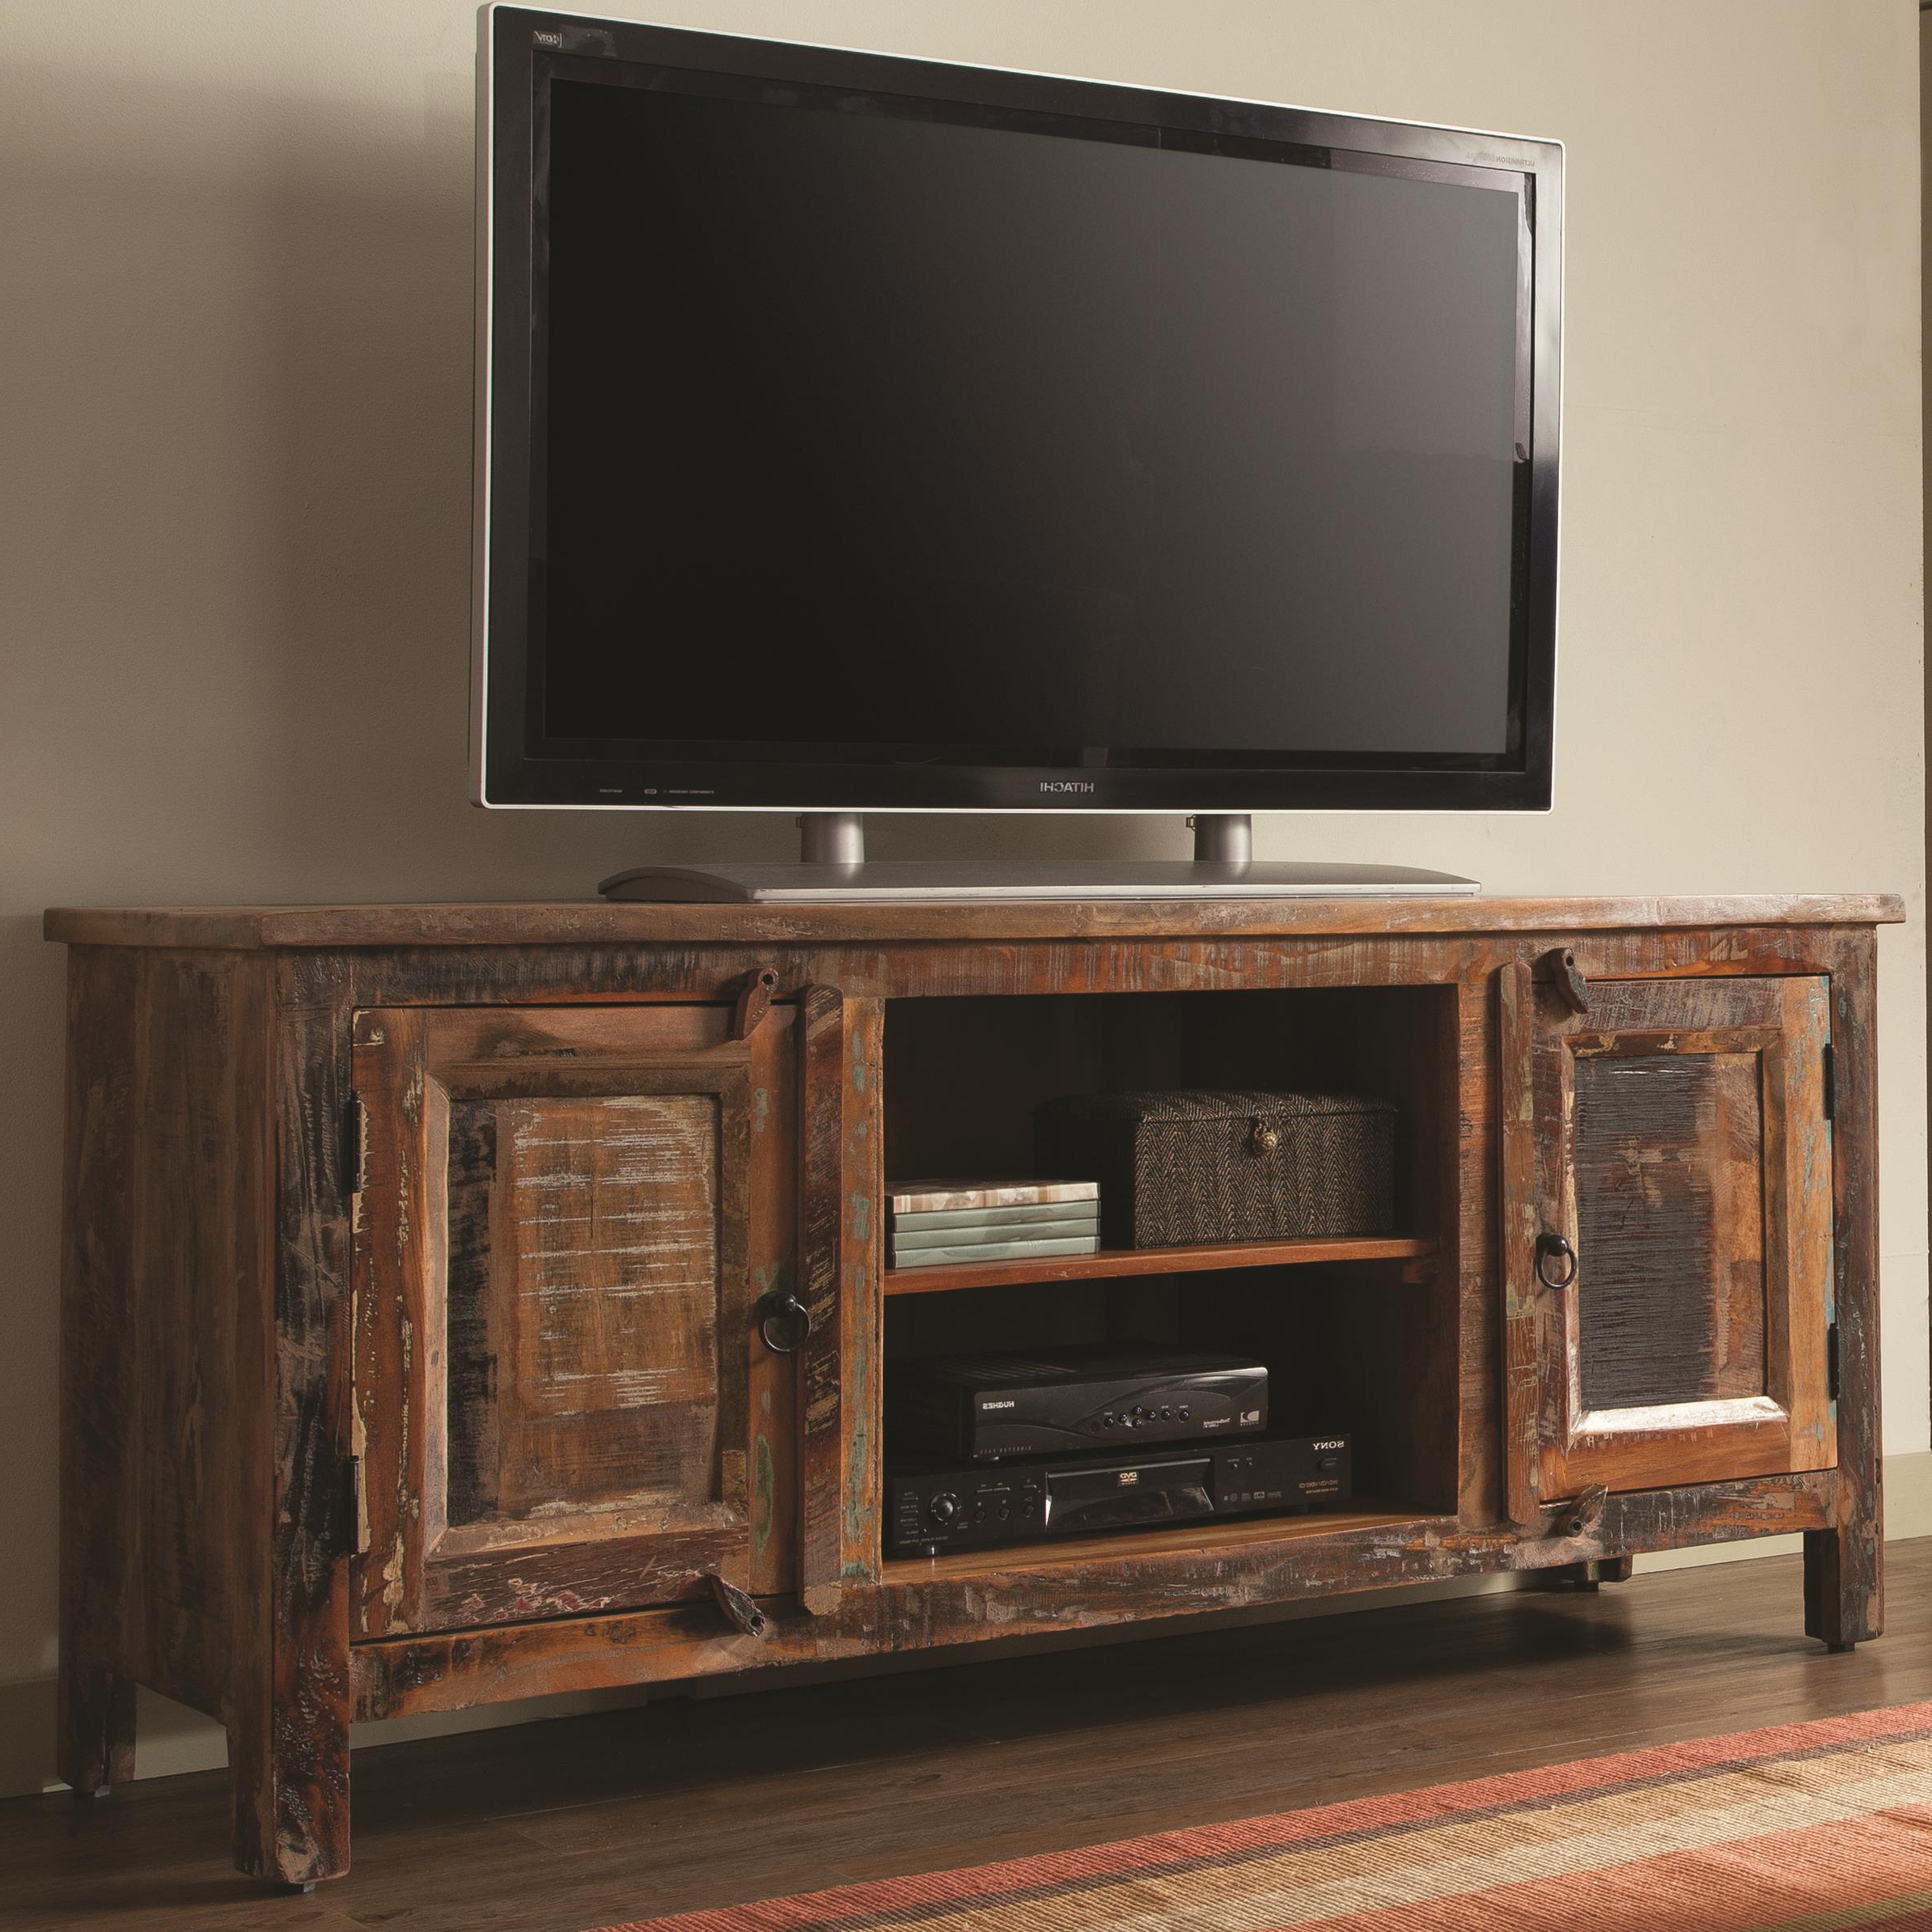 Value City Regarding Wooden Tv Stands And Cabinets (Gallery 1 of 20)